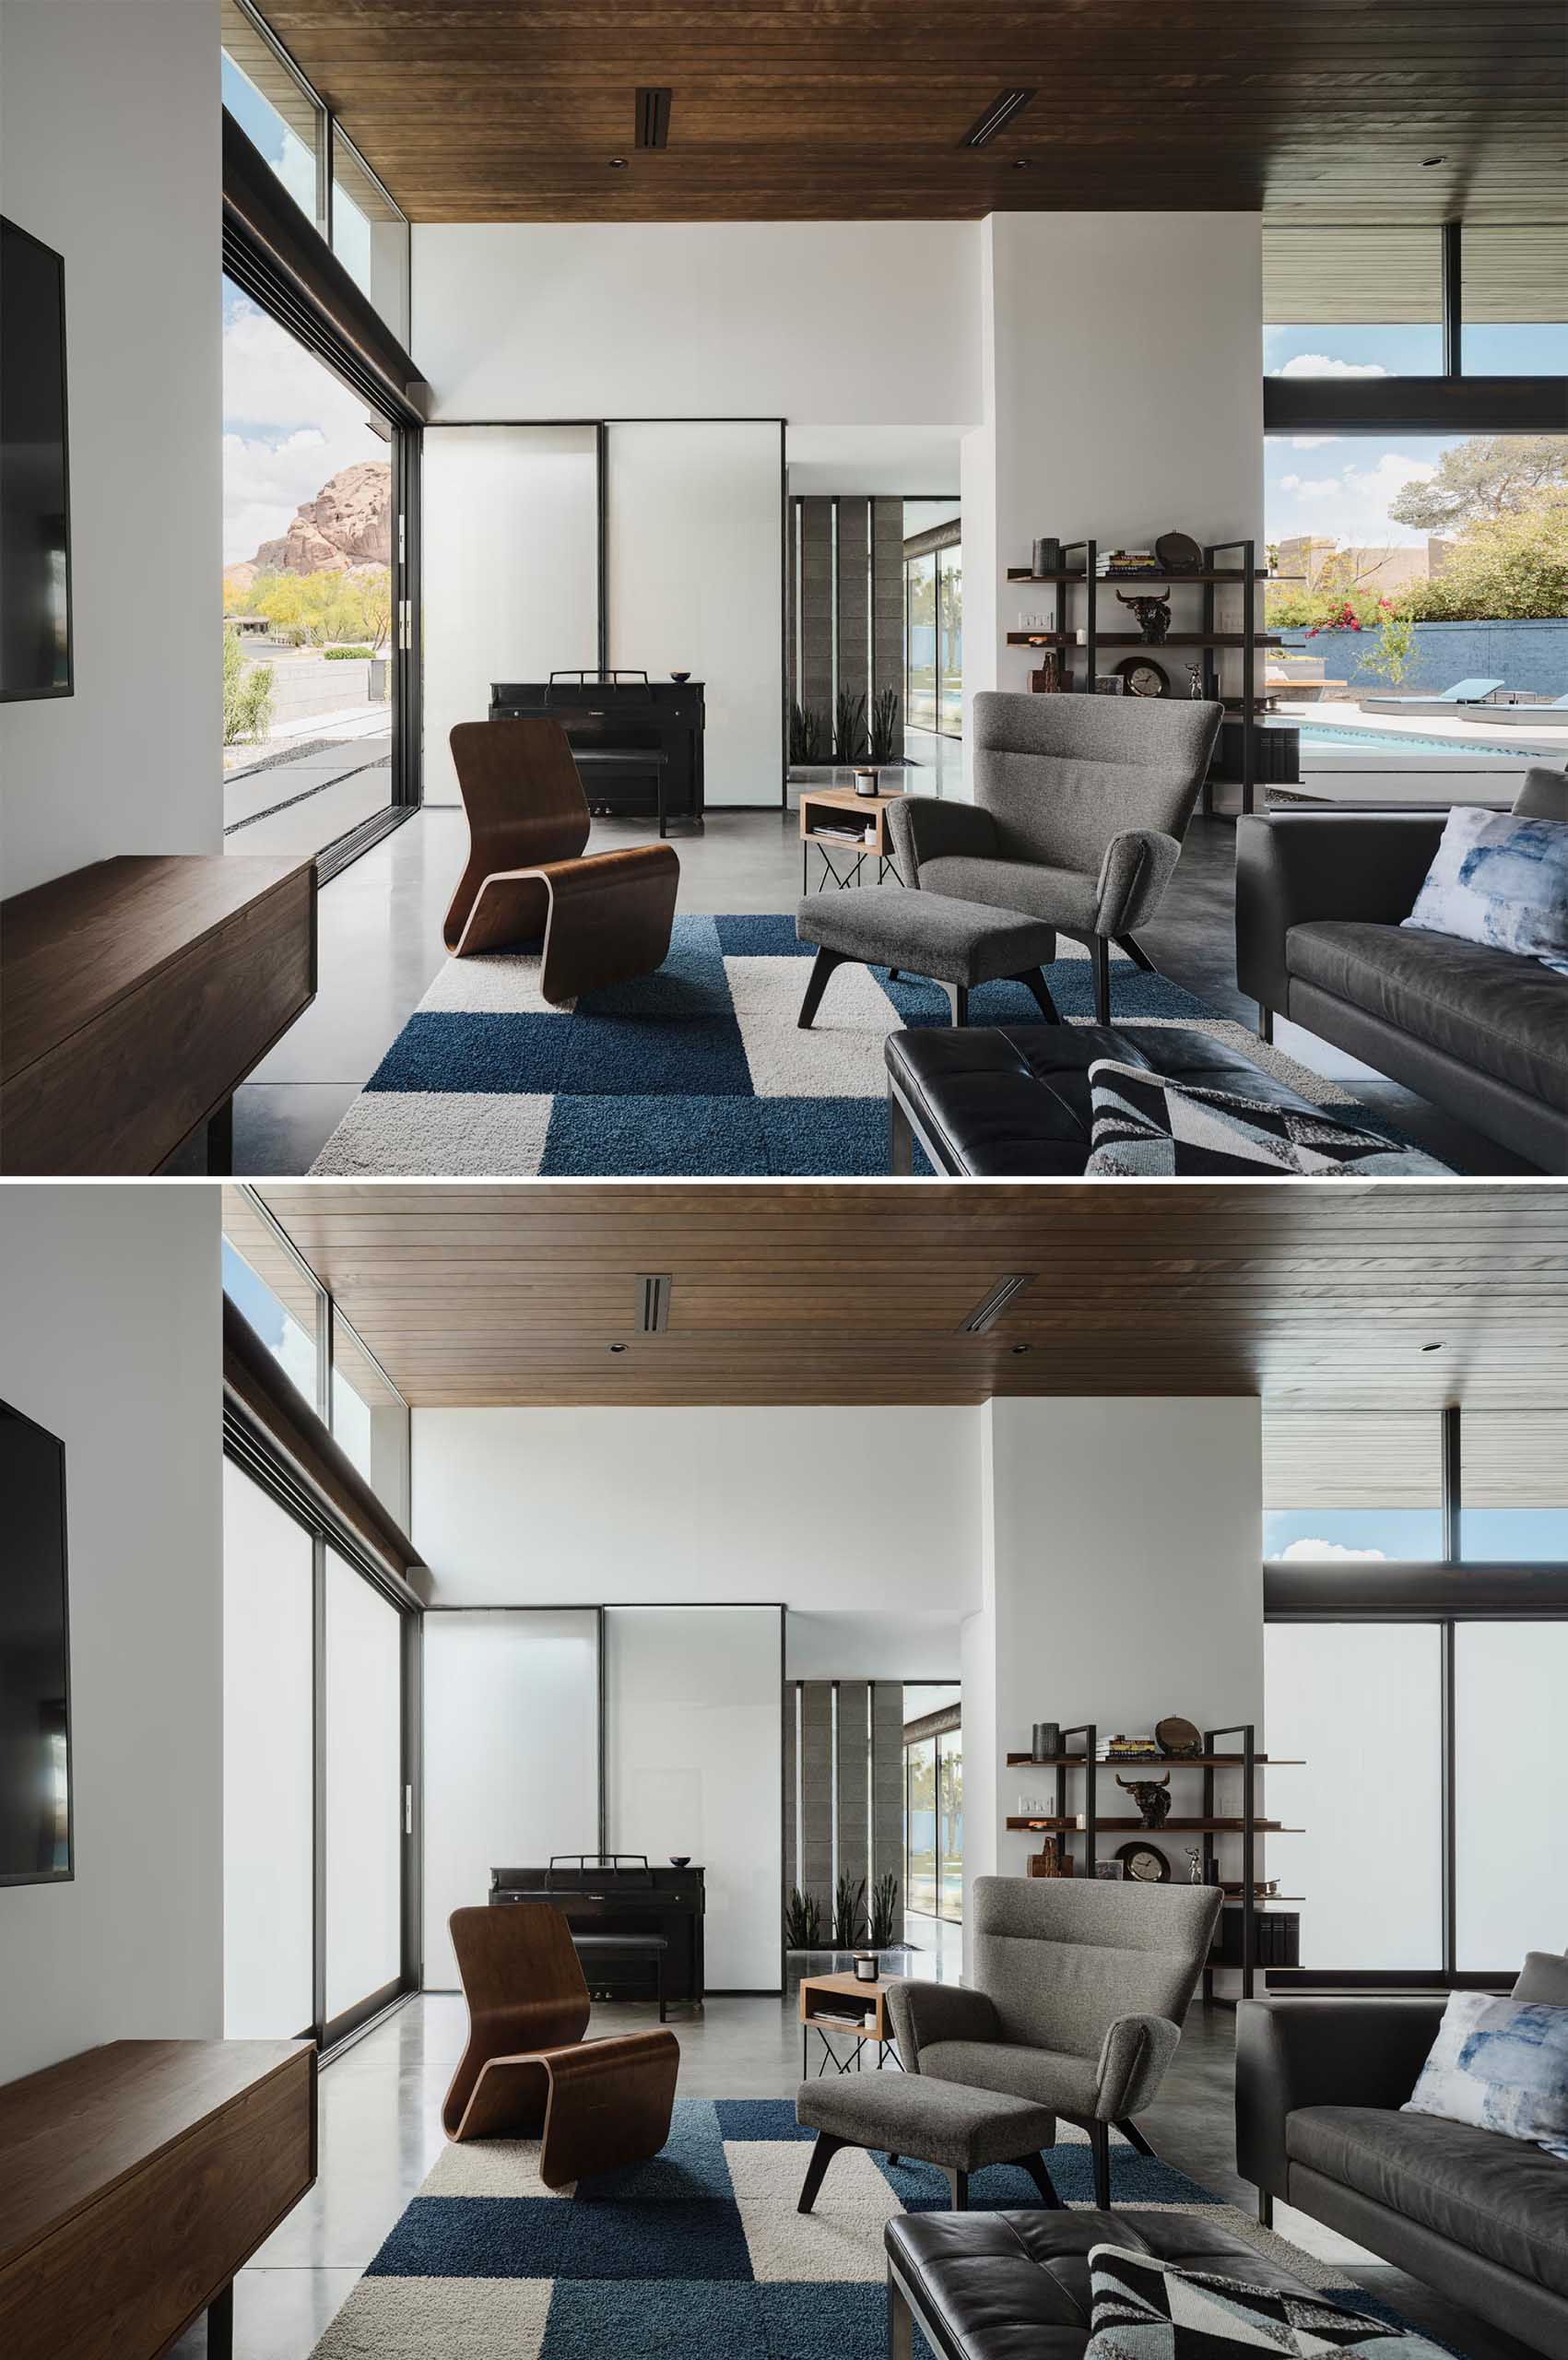 The sliding glass doors of this modern home are equipped with Gauzy, a light control glass nanotechnology that allows the glass to change from transparent to opaque for privacy and energy control.